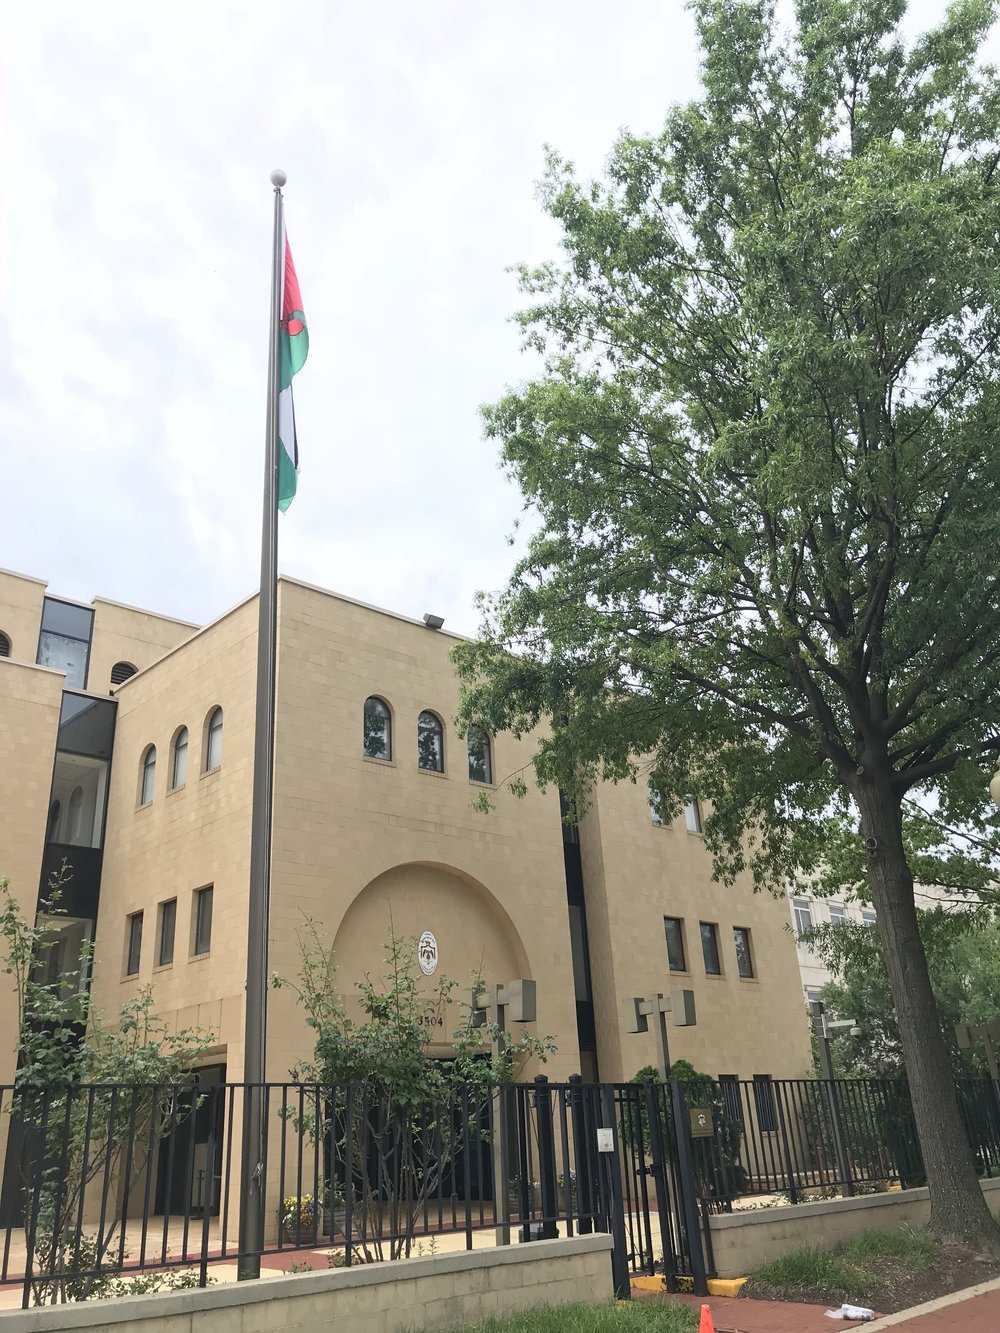 The Embassy of Jordan.